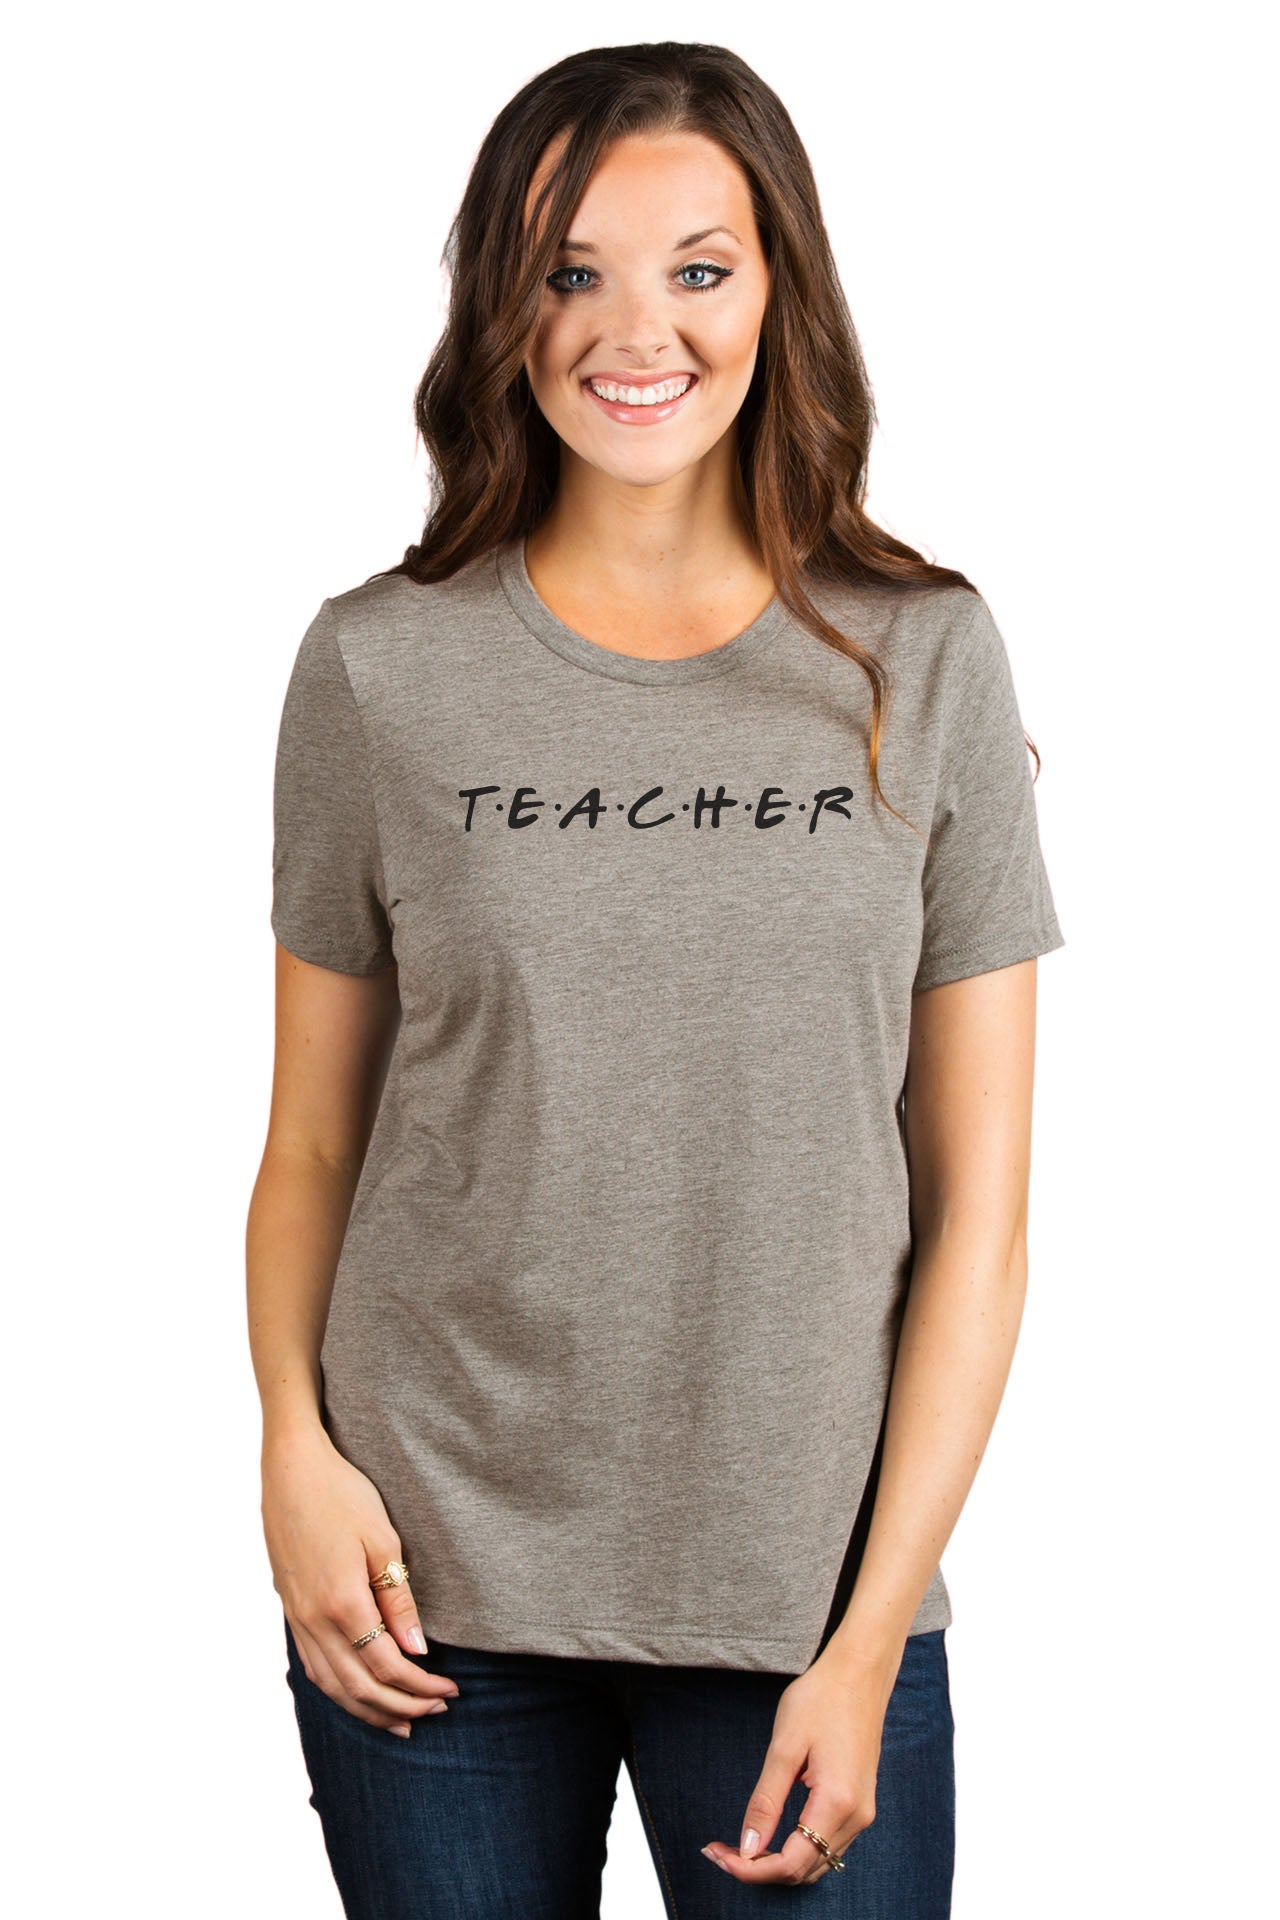 Teacher Friends Women's Relaxed Crewneck T-Shirt Top Tee Heather Tan